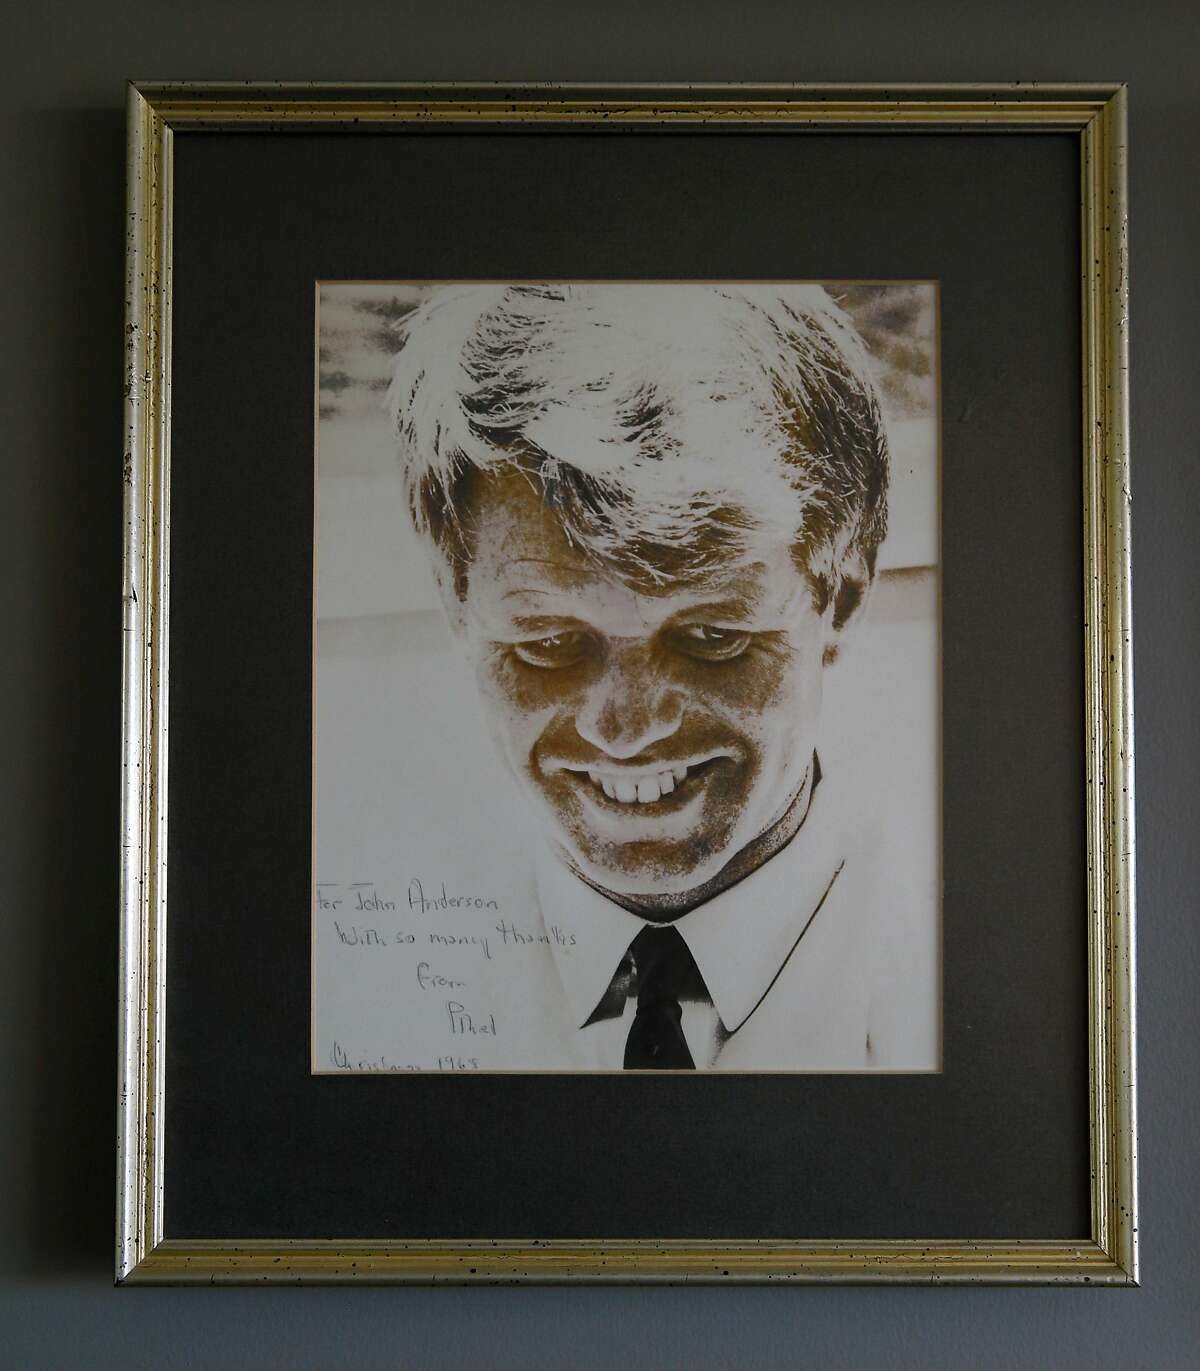 A framed photo of Robert F. Kennedy, signed and gifted by Ethel Kennedy, is seen on the wall of John Anderson's office.